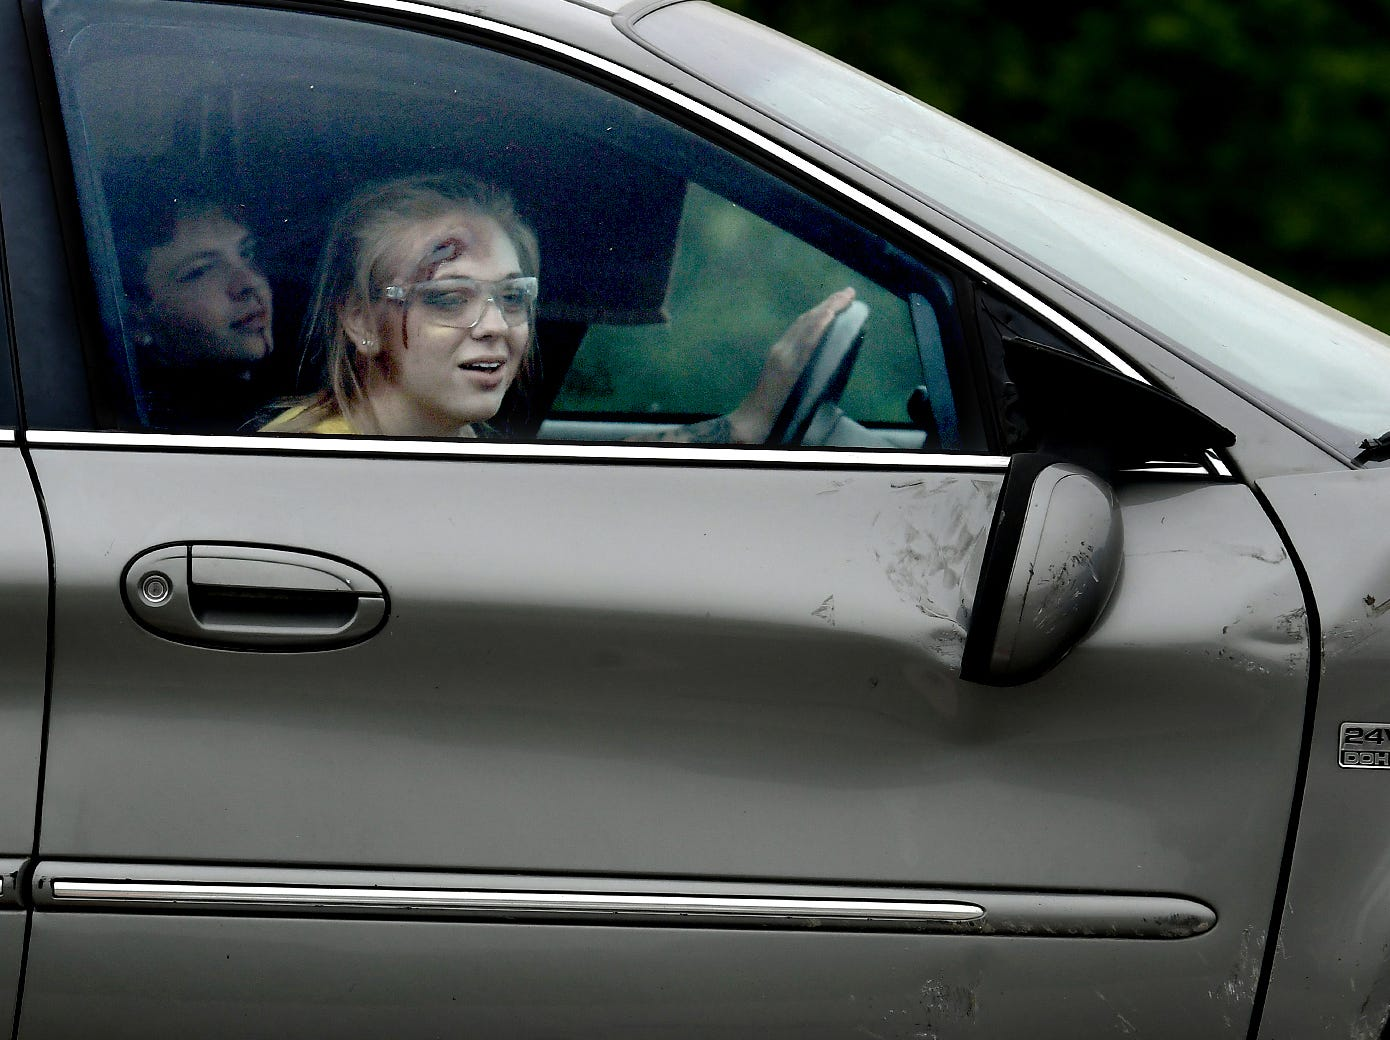 Dover High School mock accident victim, junior Victoria Brennan, peaks at senior Emma Davis during the staging at Dover Area High School Thursday, May 9, 2019. Senior Bronson Bitner sits in the driver's seat. Local fire, ambulance and police volunteered for the event which reminds high school upperclassmen to be safe during prom season. Dover's prom in Saturday, May 11. Bill Kalina photo